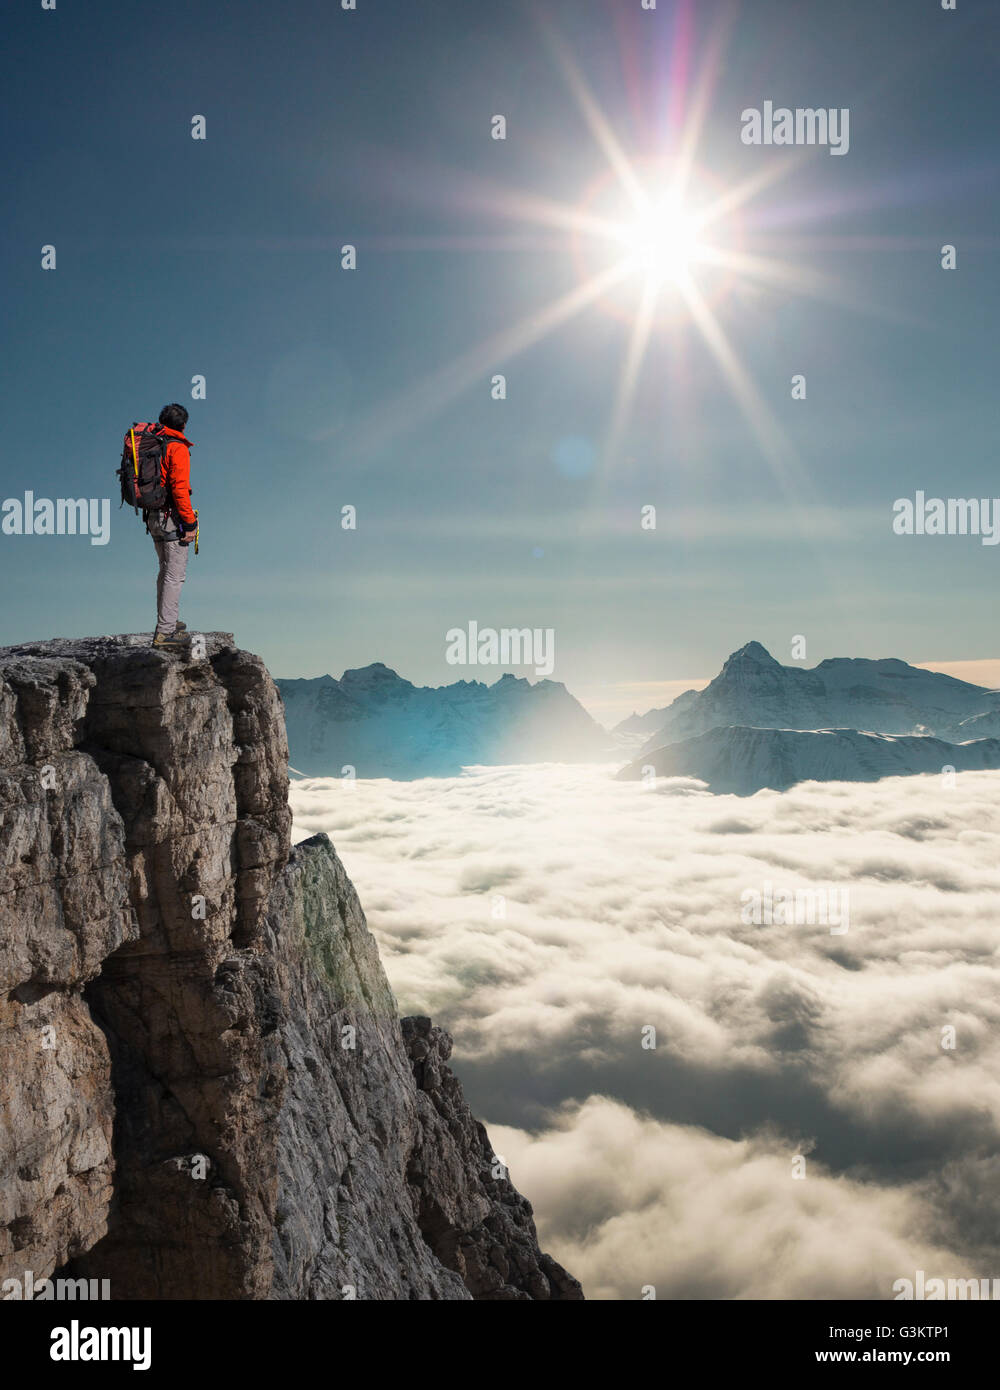 Climber looking out from peak emerging from fog in the Alps, Bettmeralp, Valais, Switzerland - Stock Image